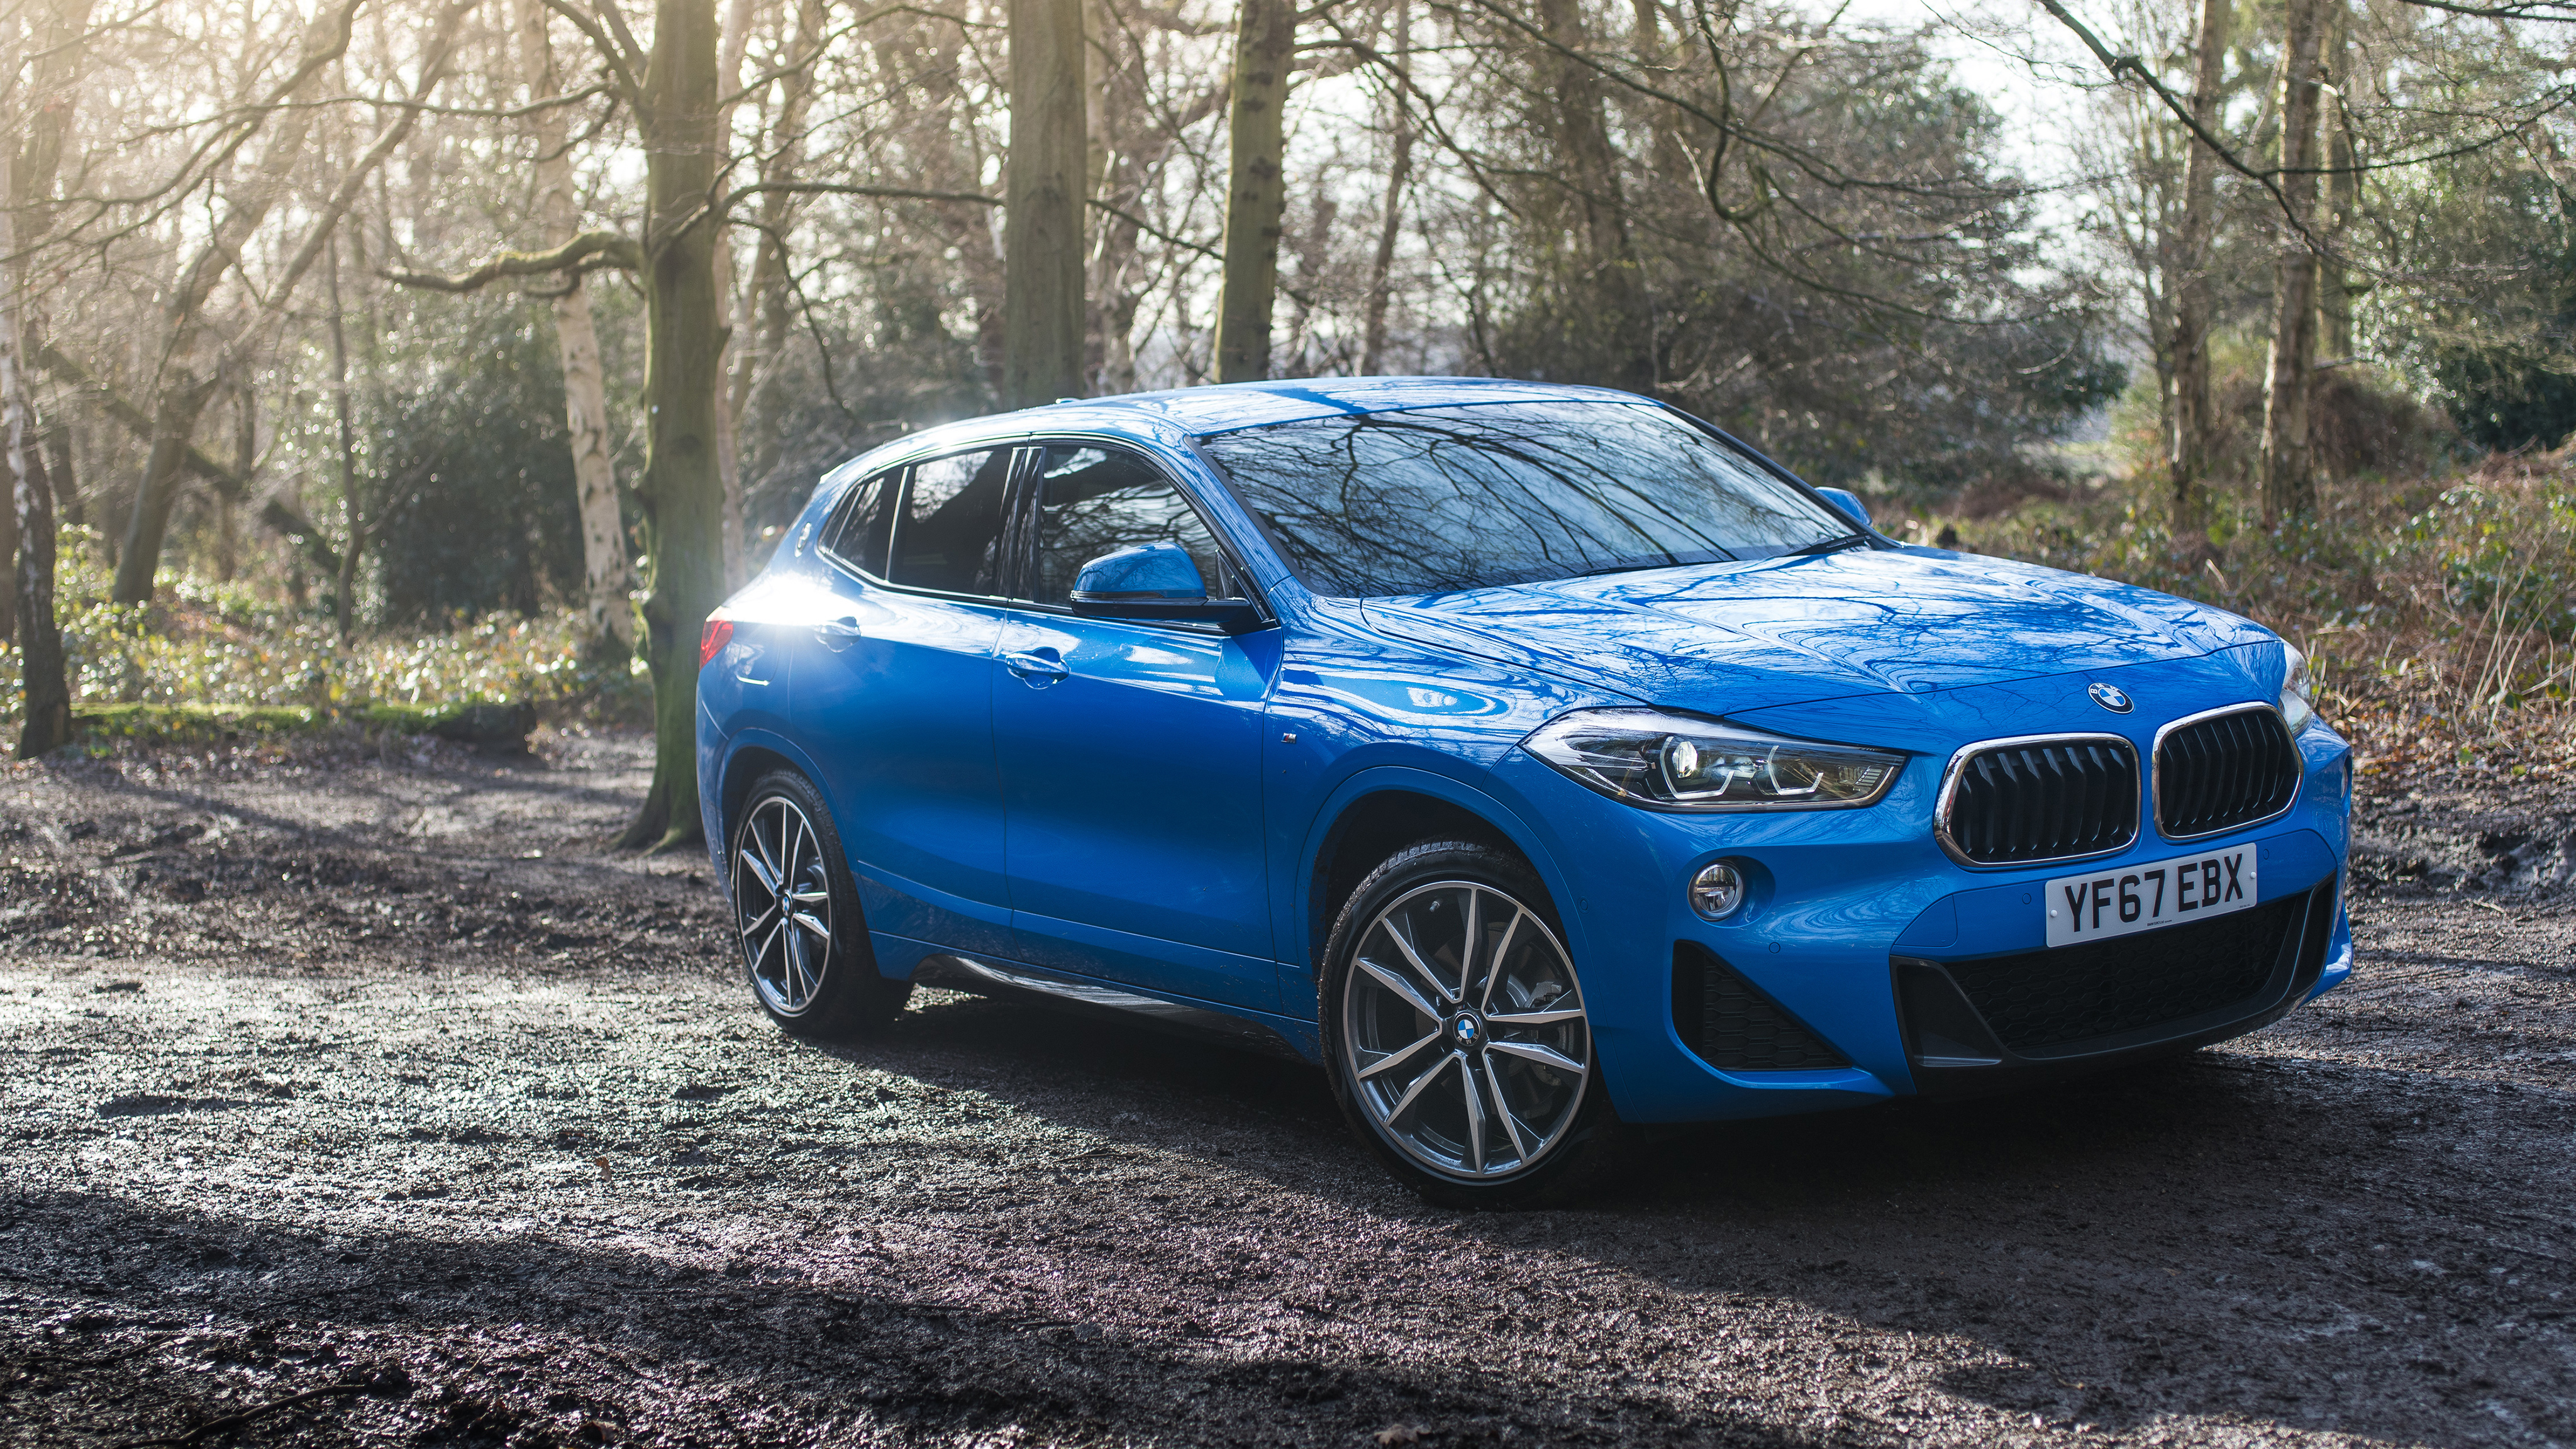 2018 bmw x2 xdrive20d m sport 4k 2 wallpaper hd car wallpapers id 9698. Black Bedroom Furniture Sets. Home Design Ideas